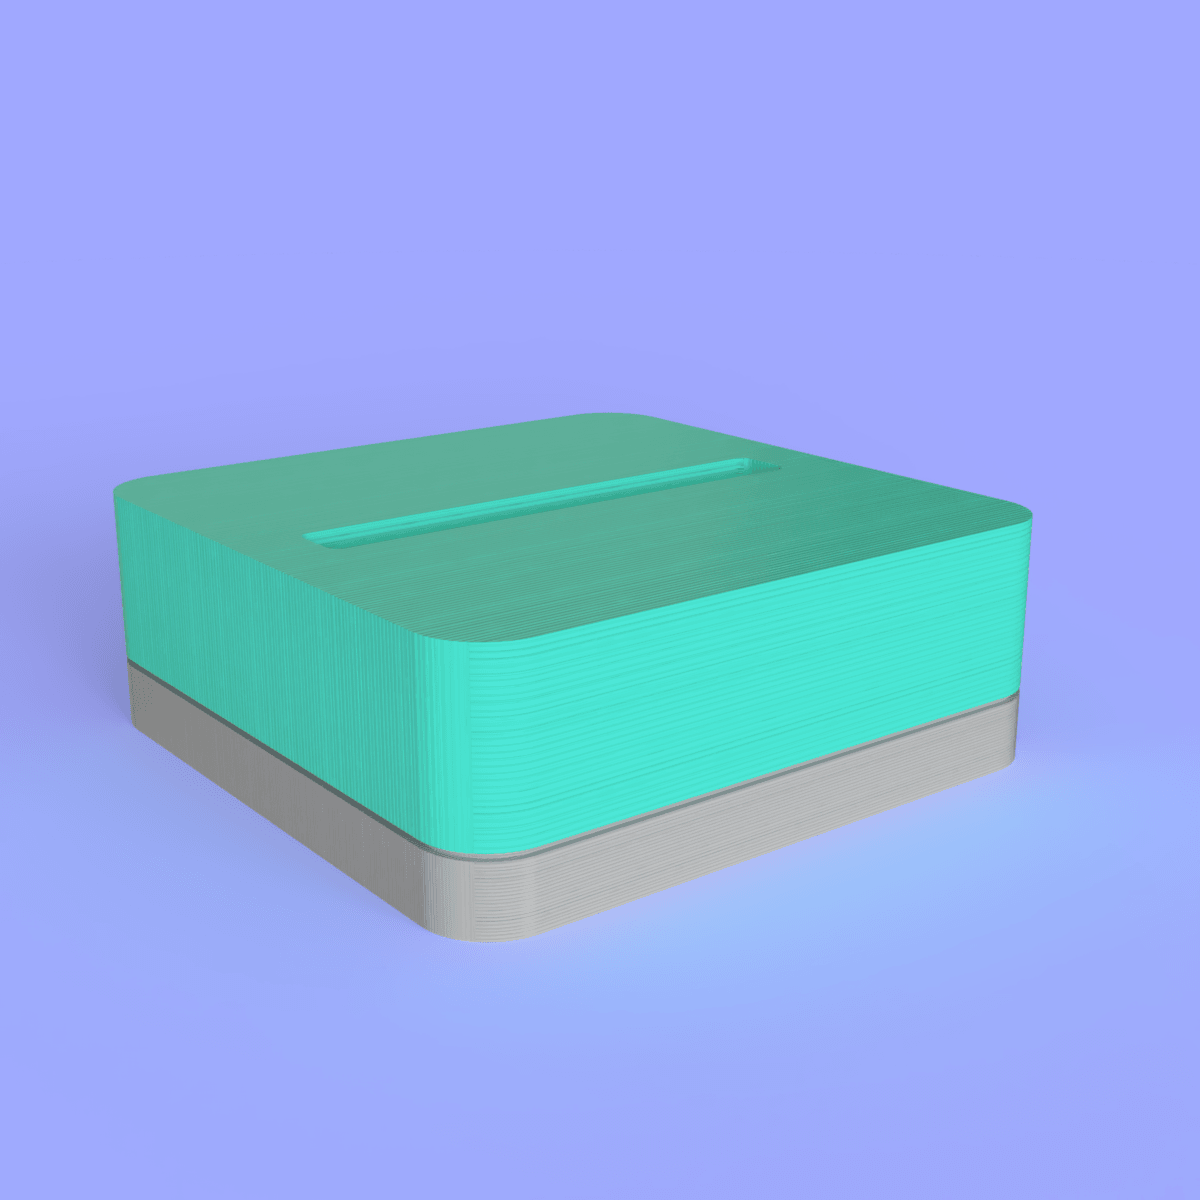 Idock_2019-Jan-14_04-34-55PM-000_CustomizedView50064074733_png.png Download free STL file Dock Iphone X • 3D printable design, Geandro_Valcorte